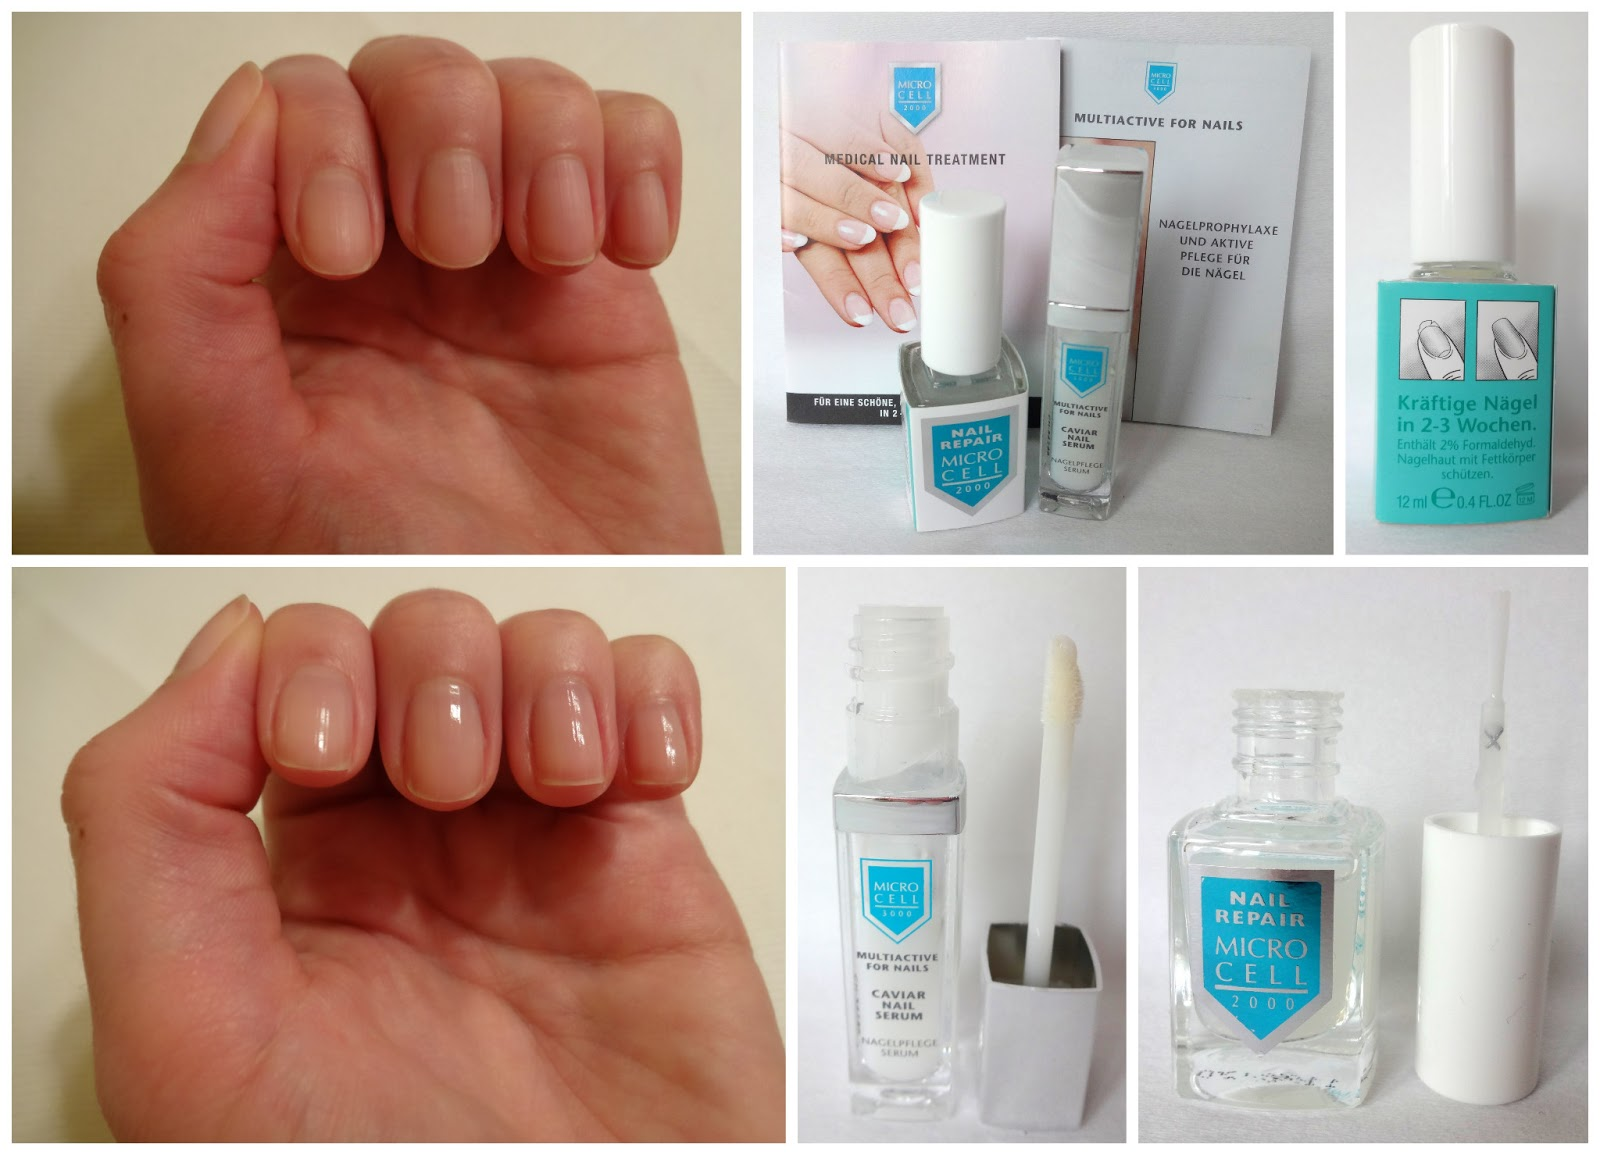 Micro Cell 3000 Caviar Nail Serum und Micro Cell 2000 Nail Repair